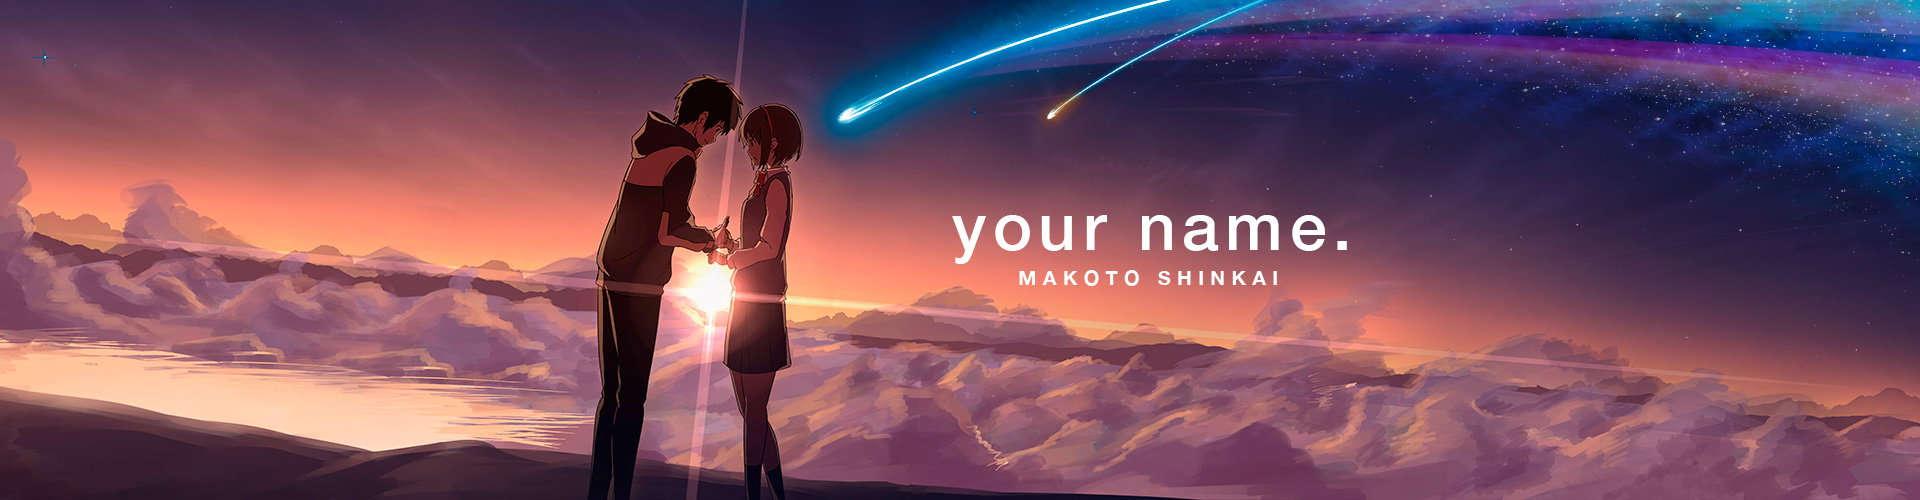 Dvd-it_slider_YourName-3-